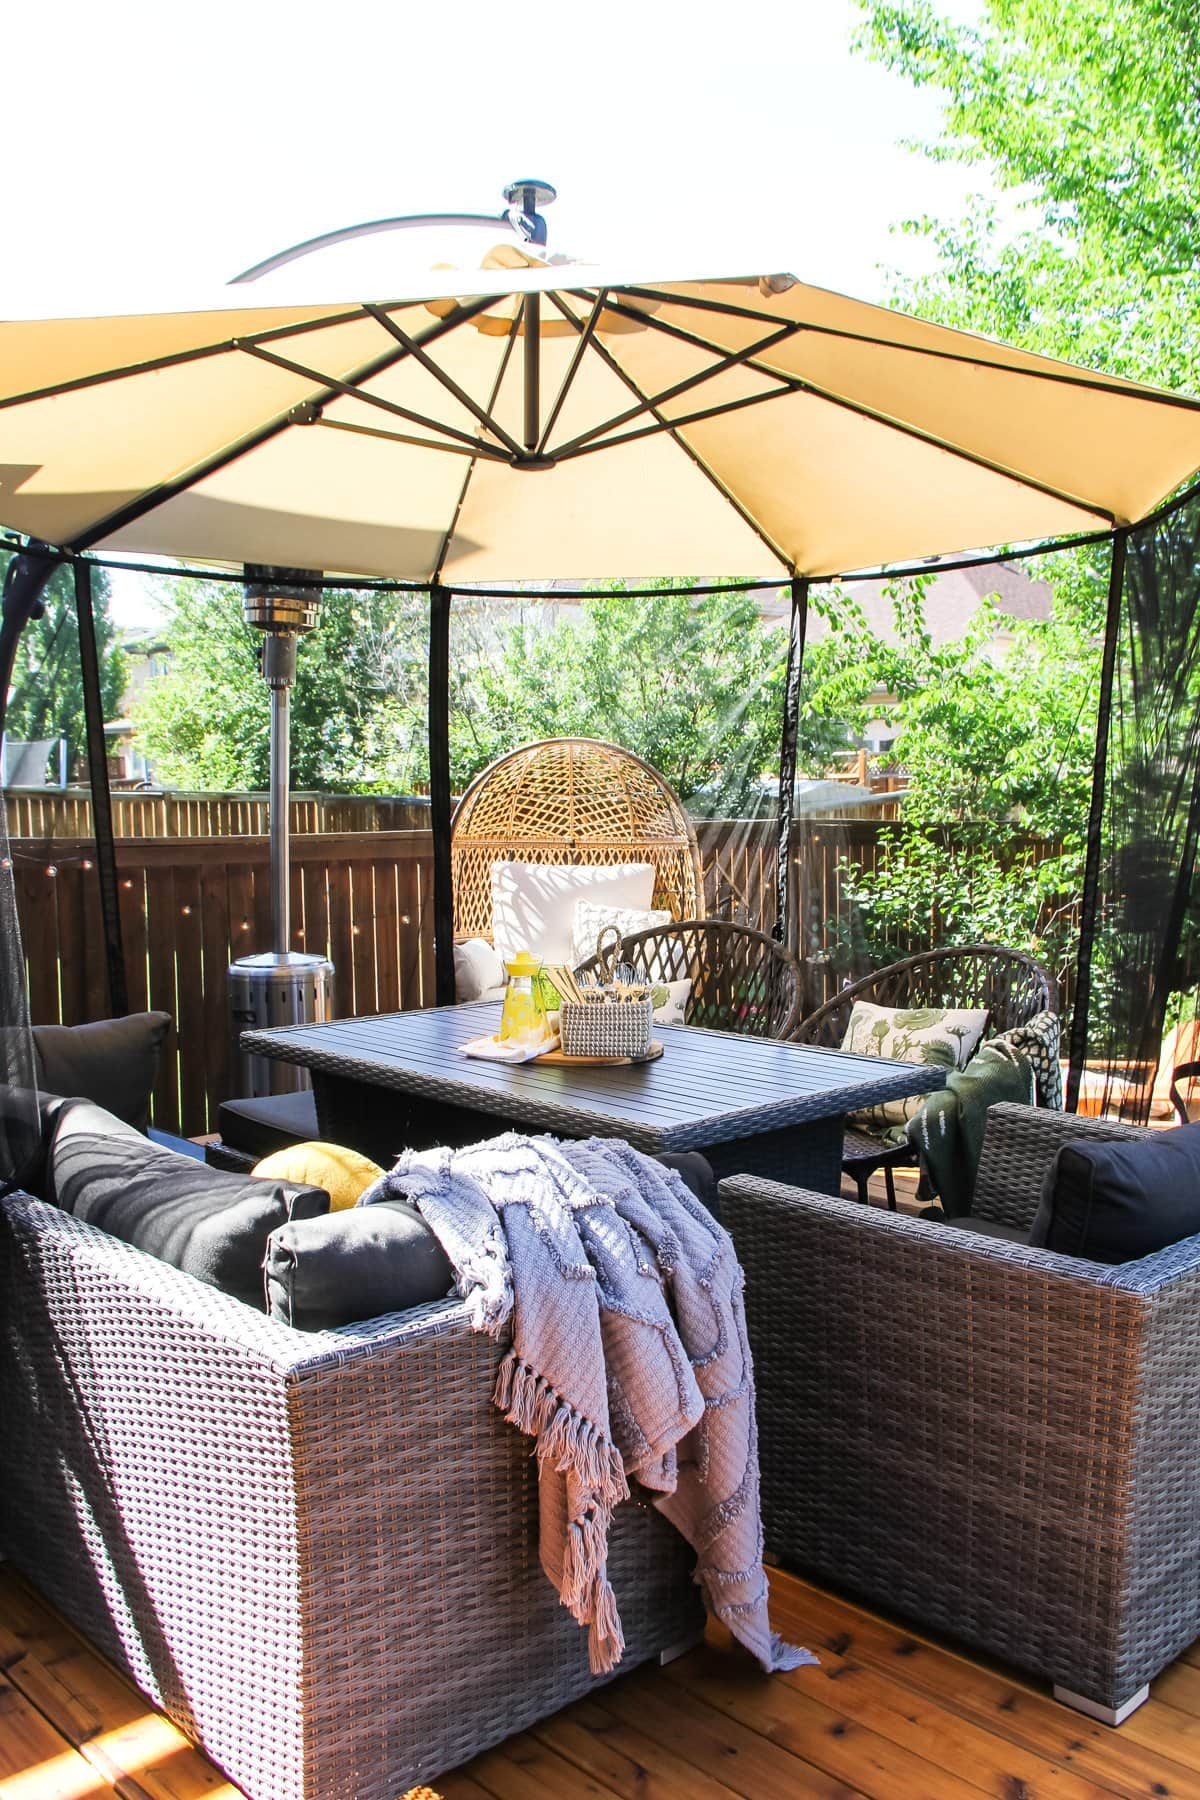 a table and chairs sits under a patio umbrella